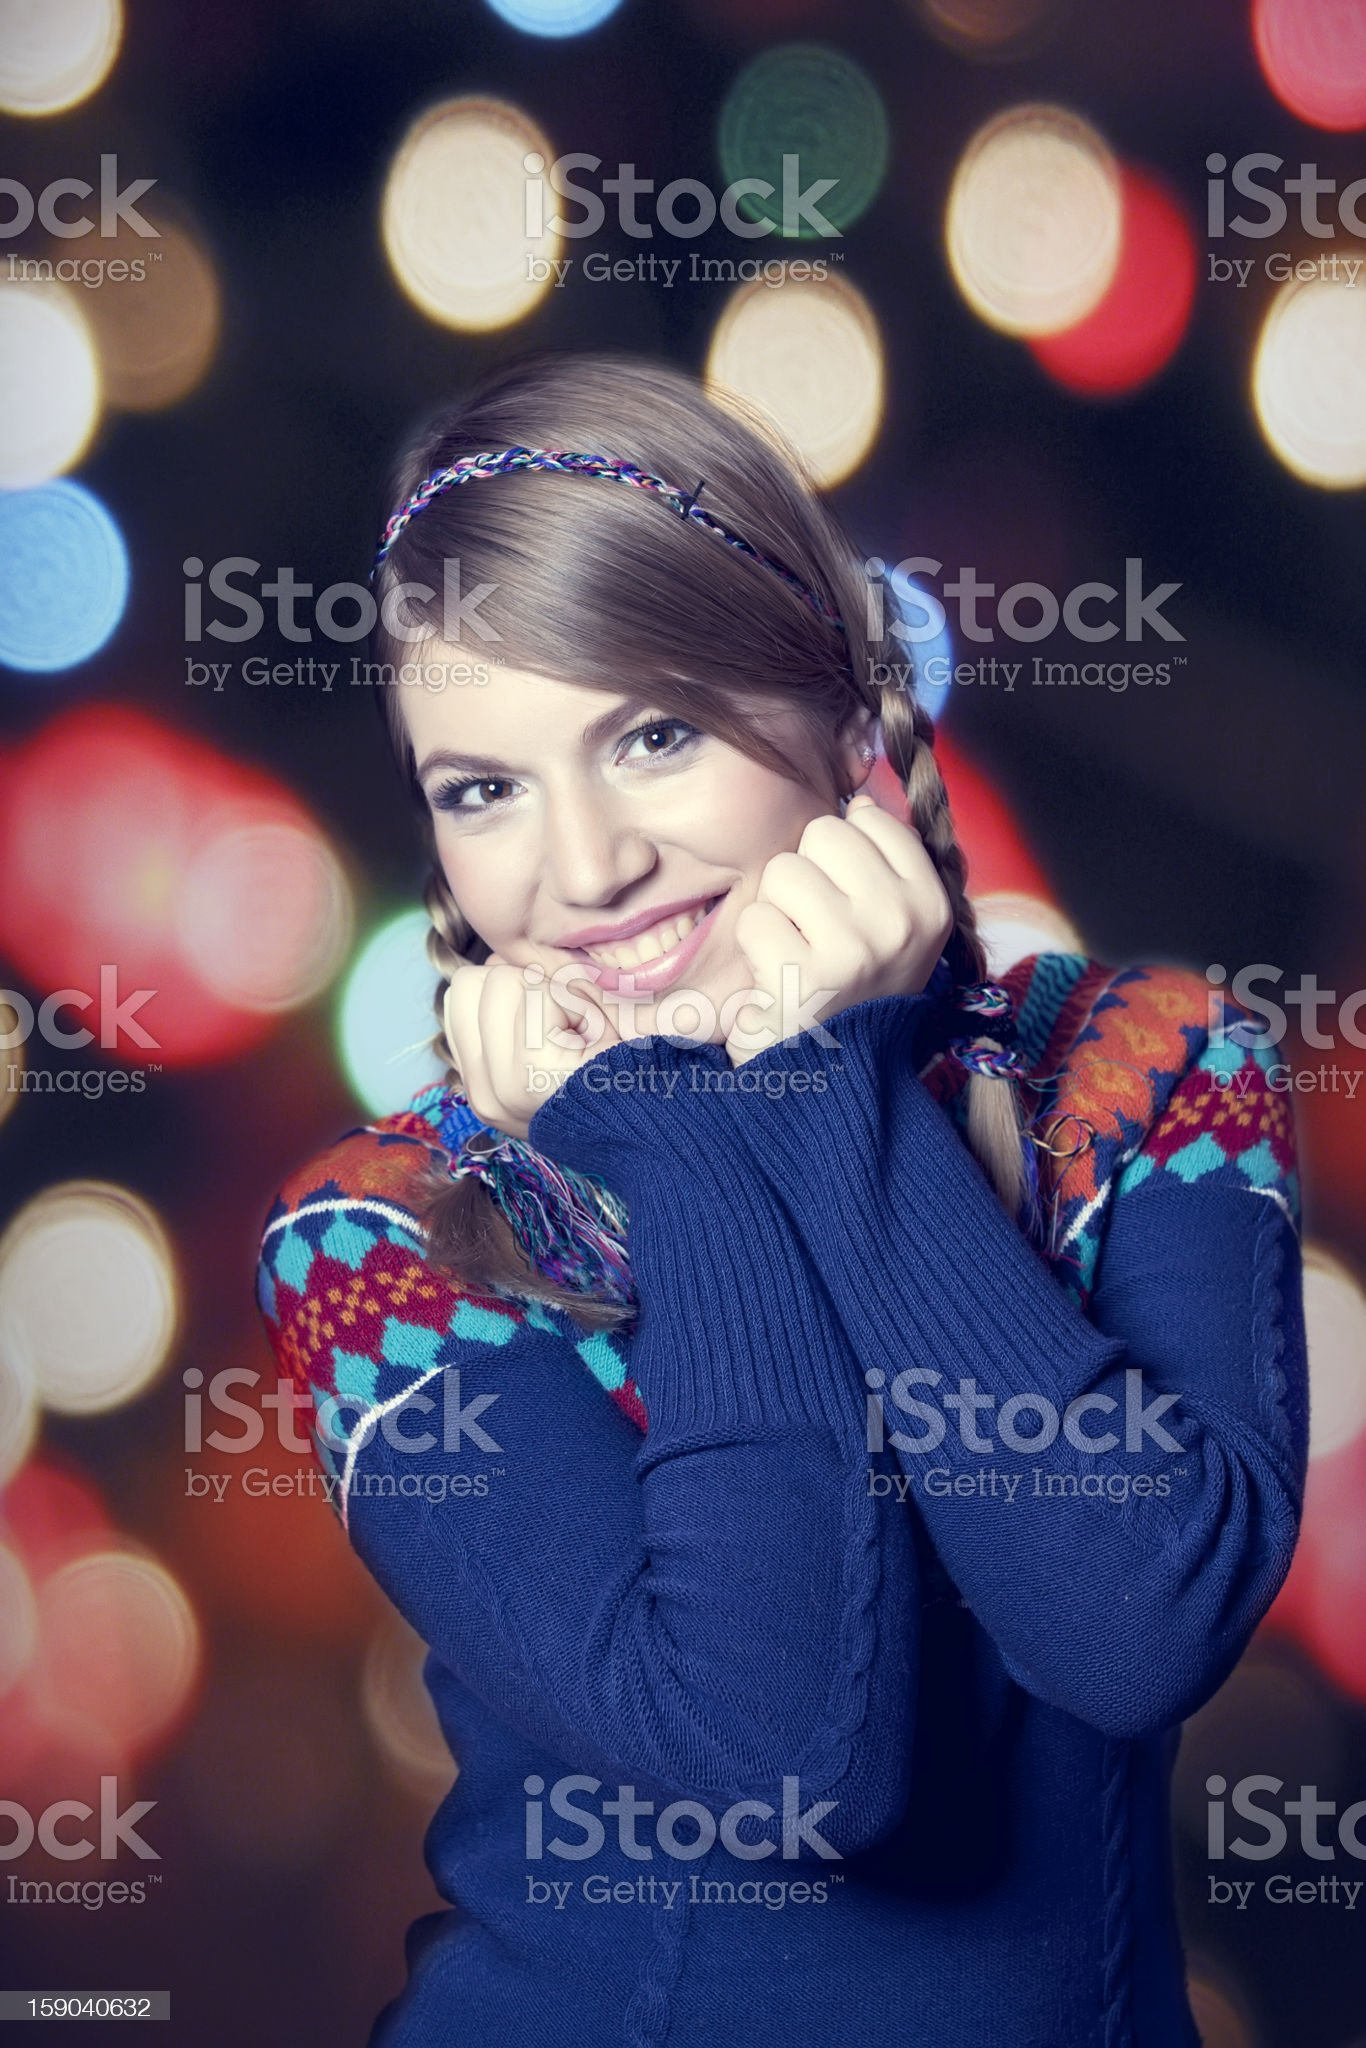 Lovely girl in sweater. royalty-free stock photo